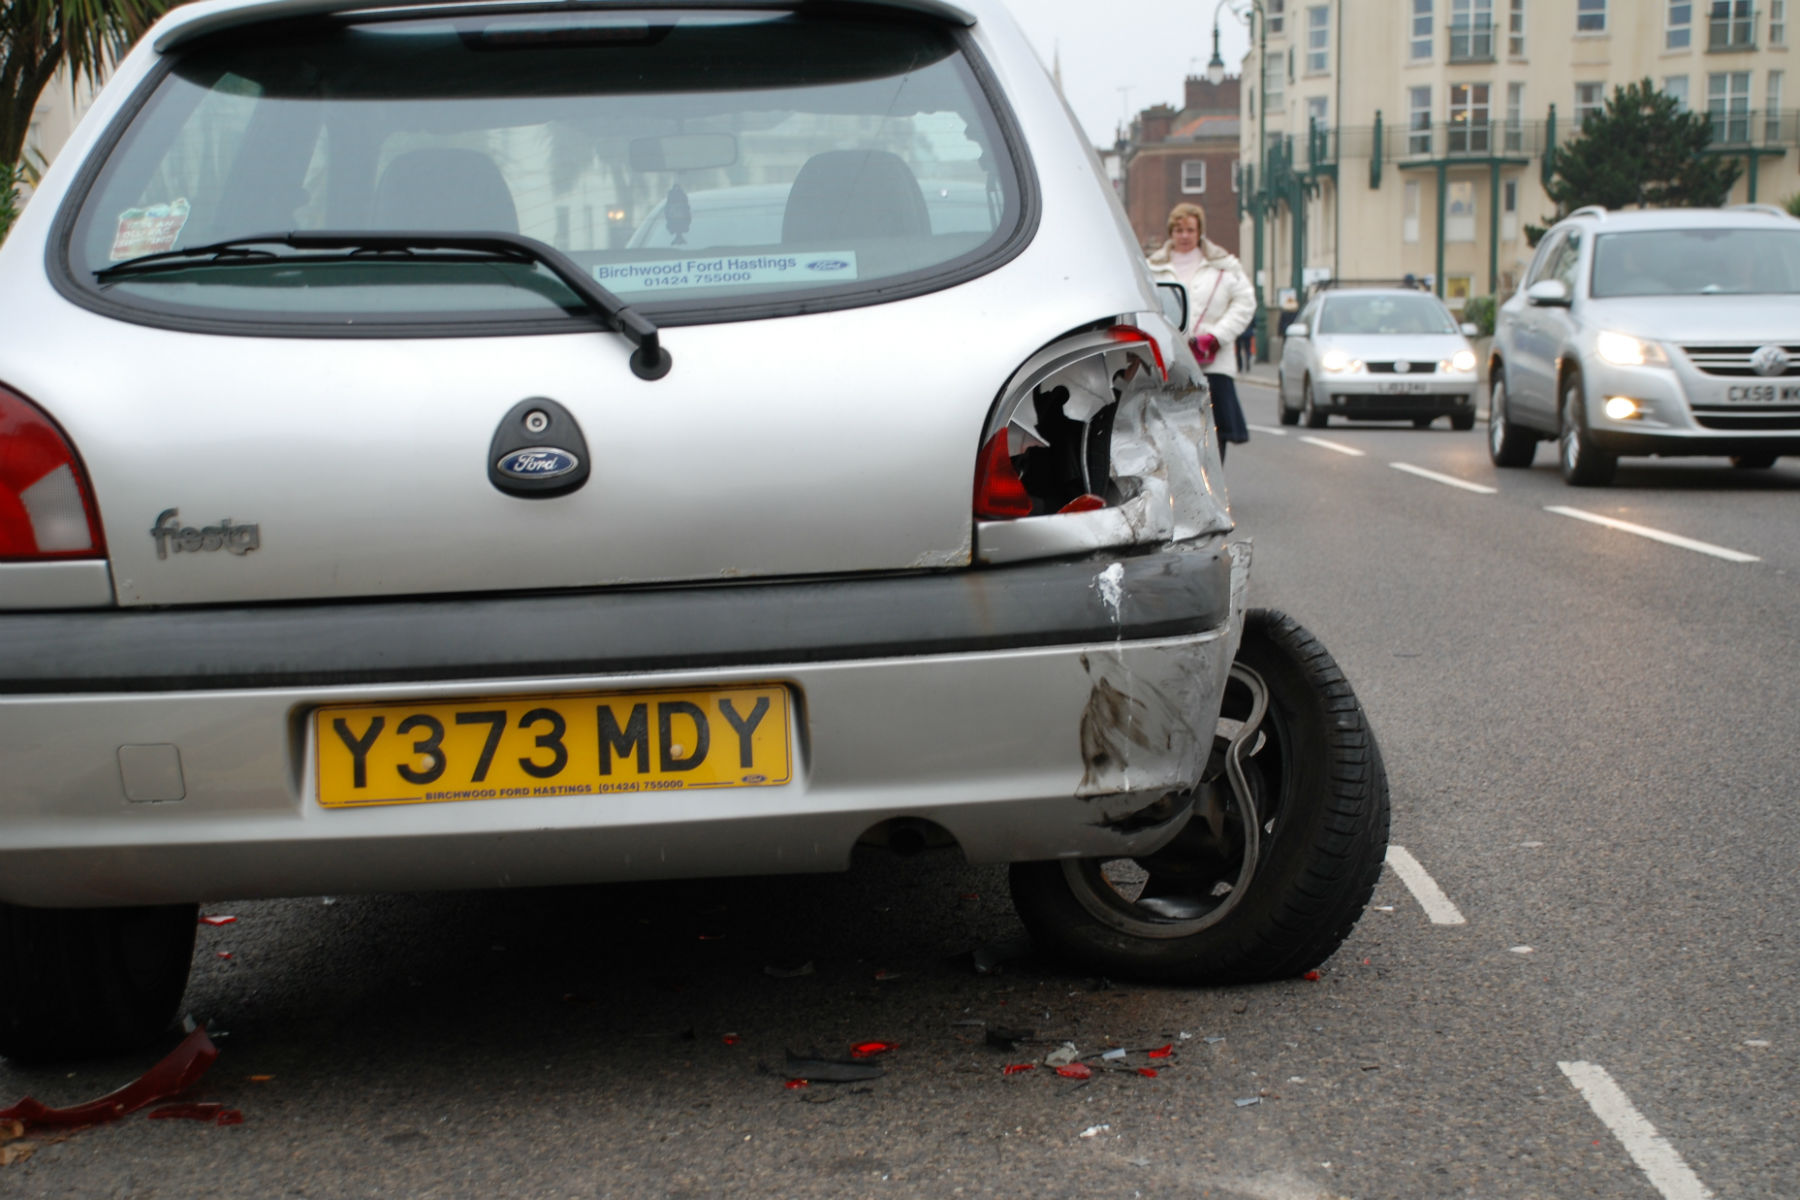 Crashed cars: what do these insurance write-off categories mean?